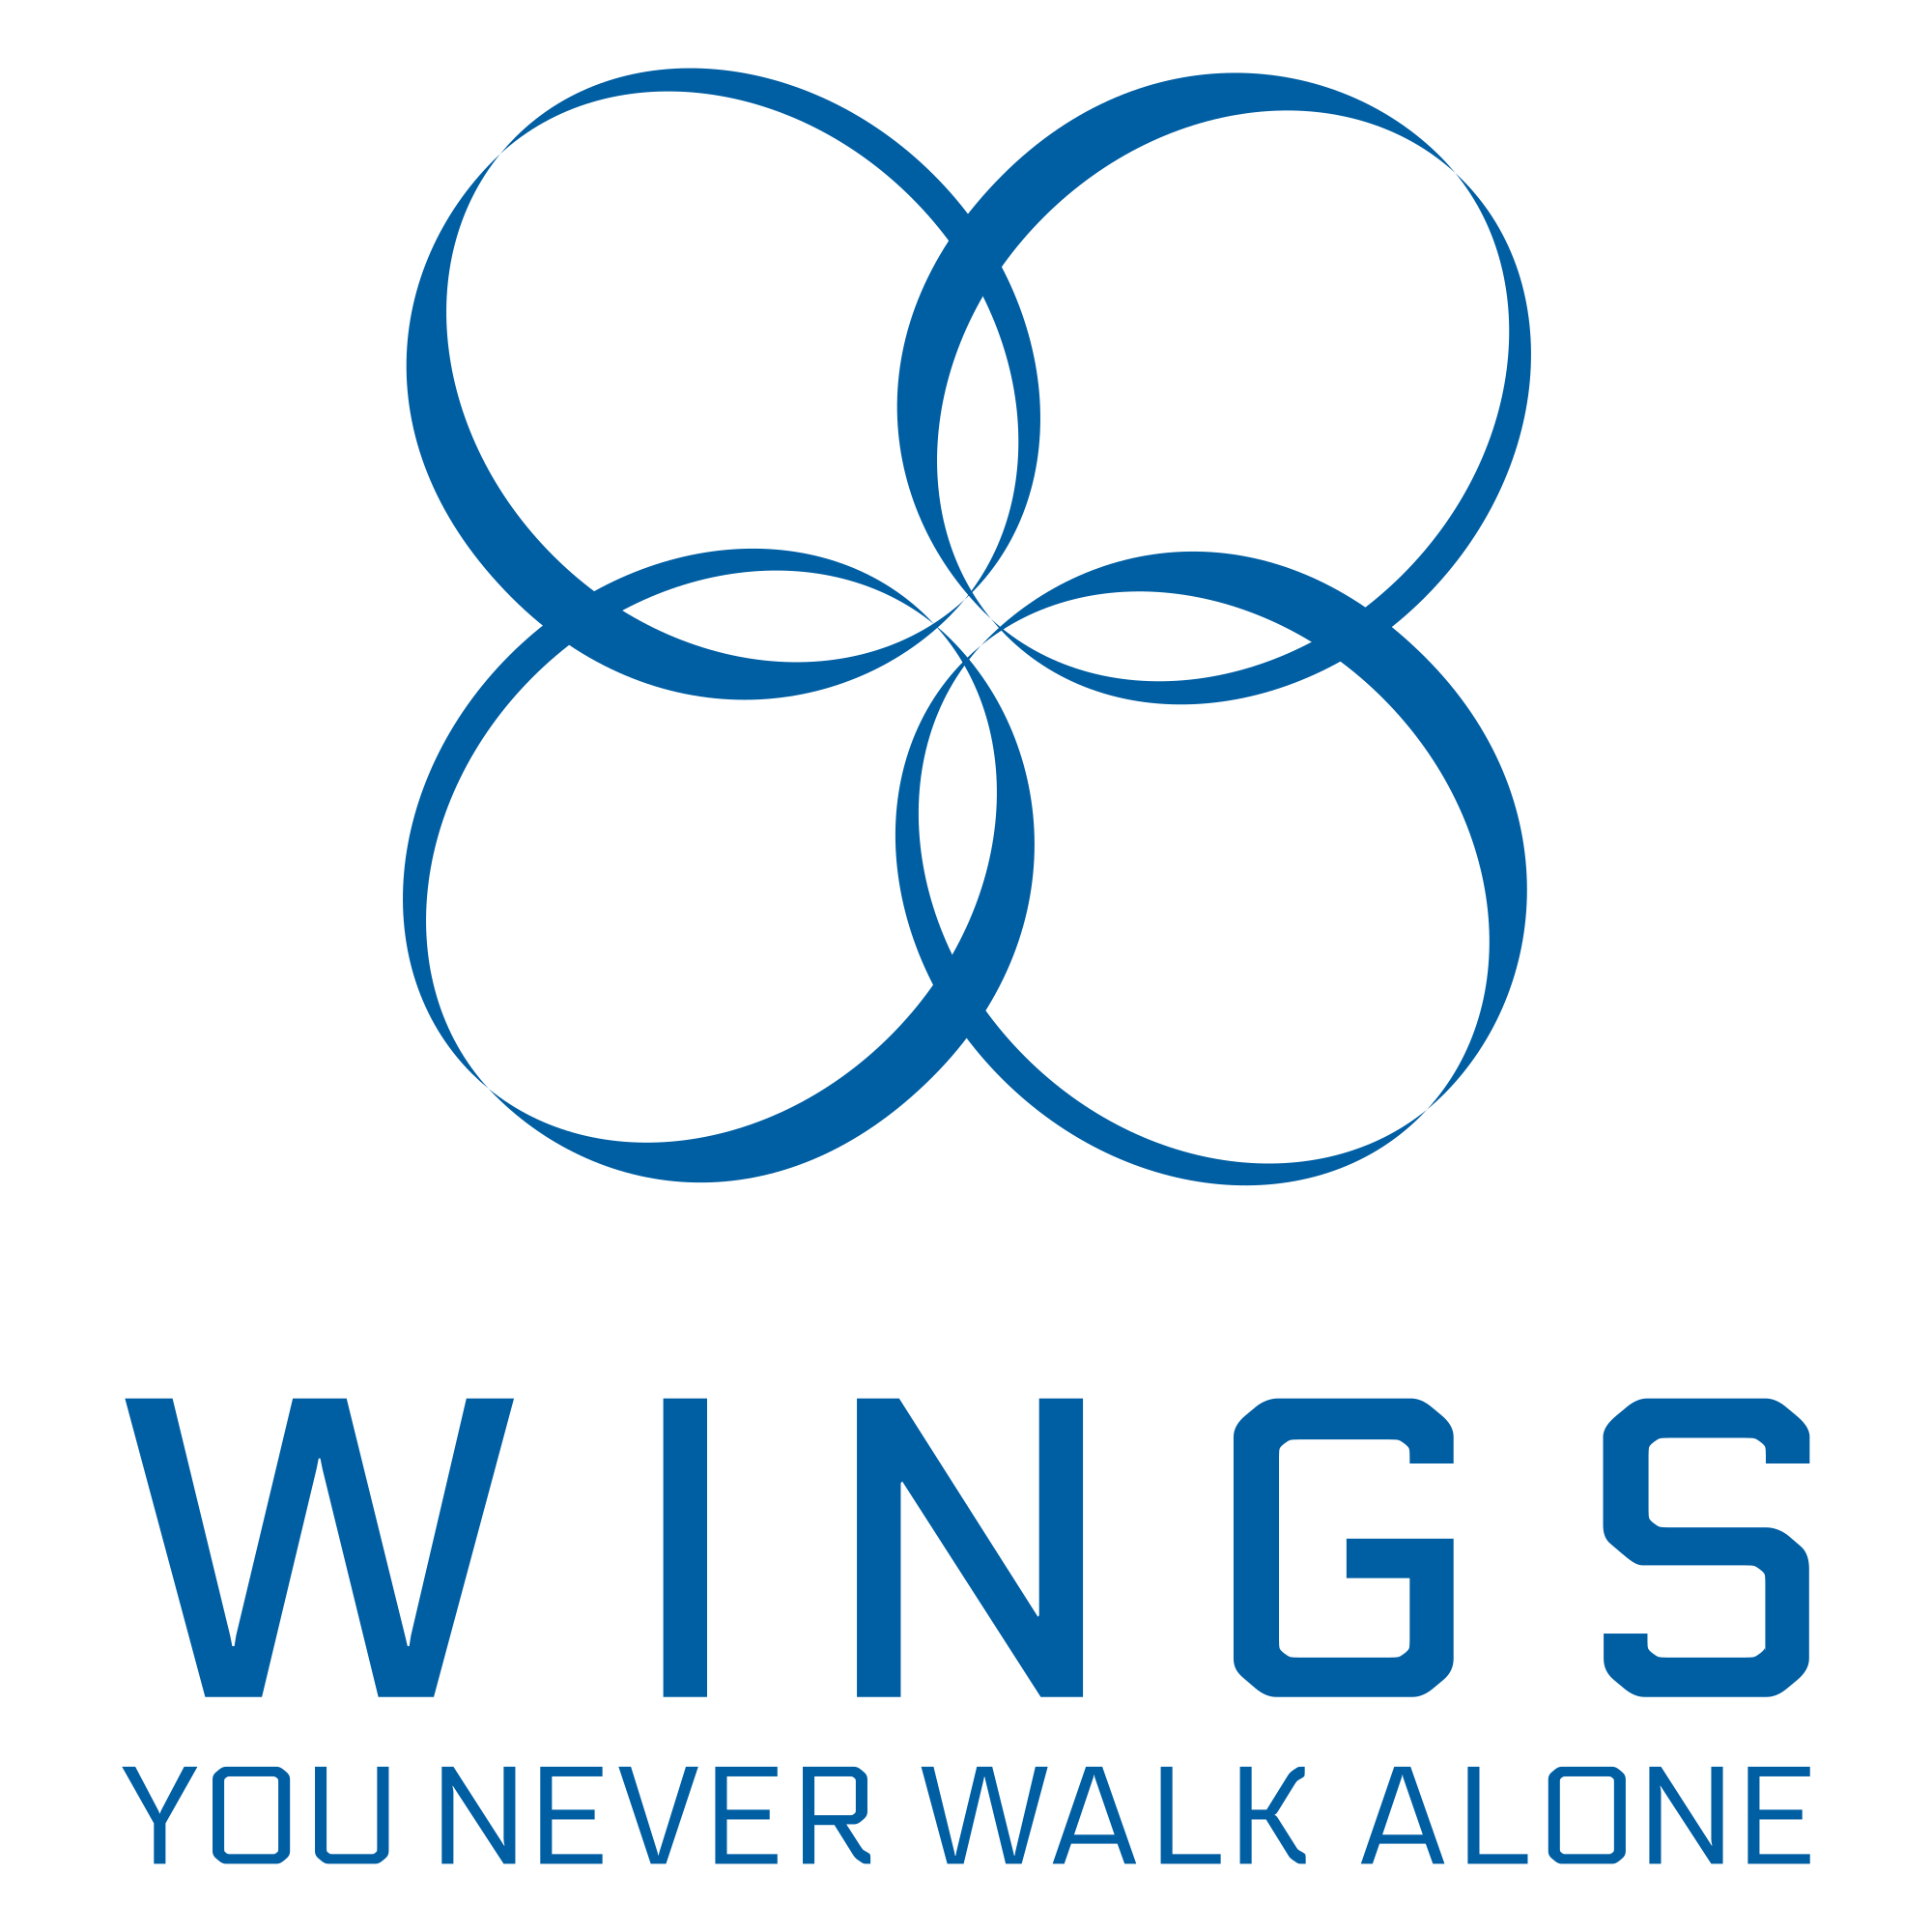 Bts wings logo png